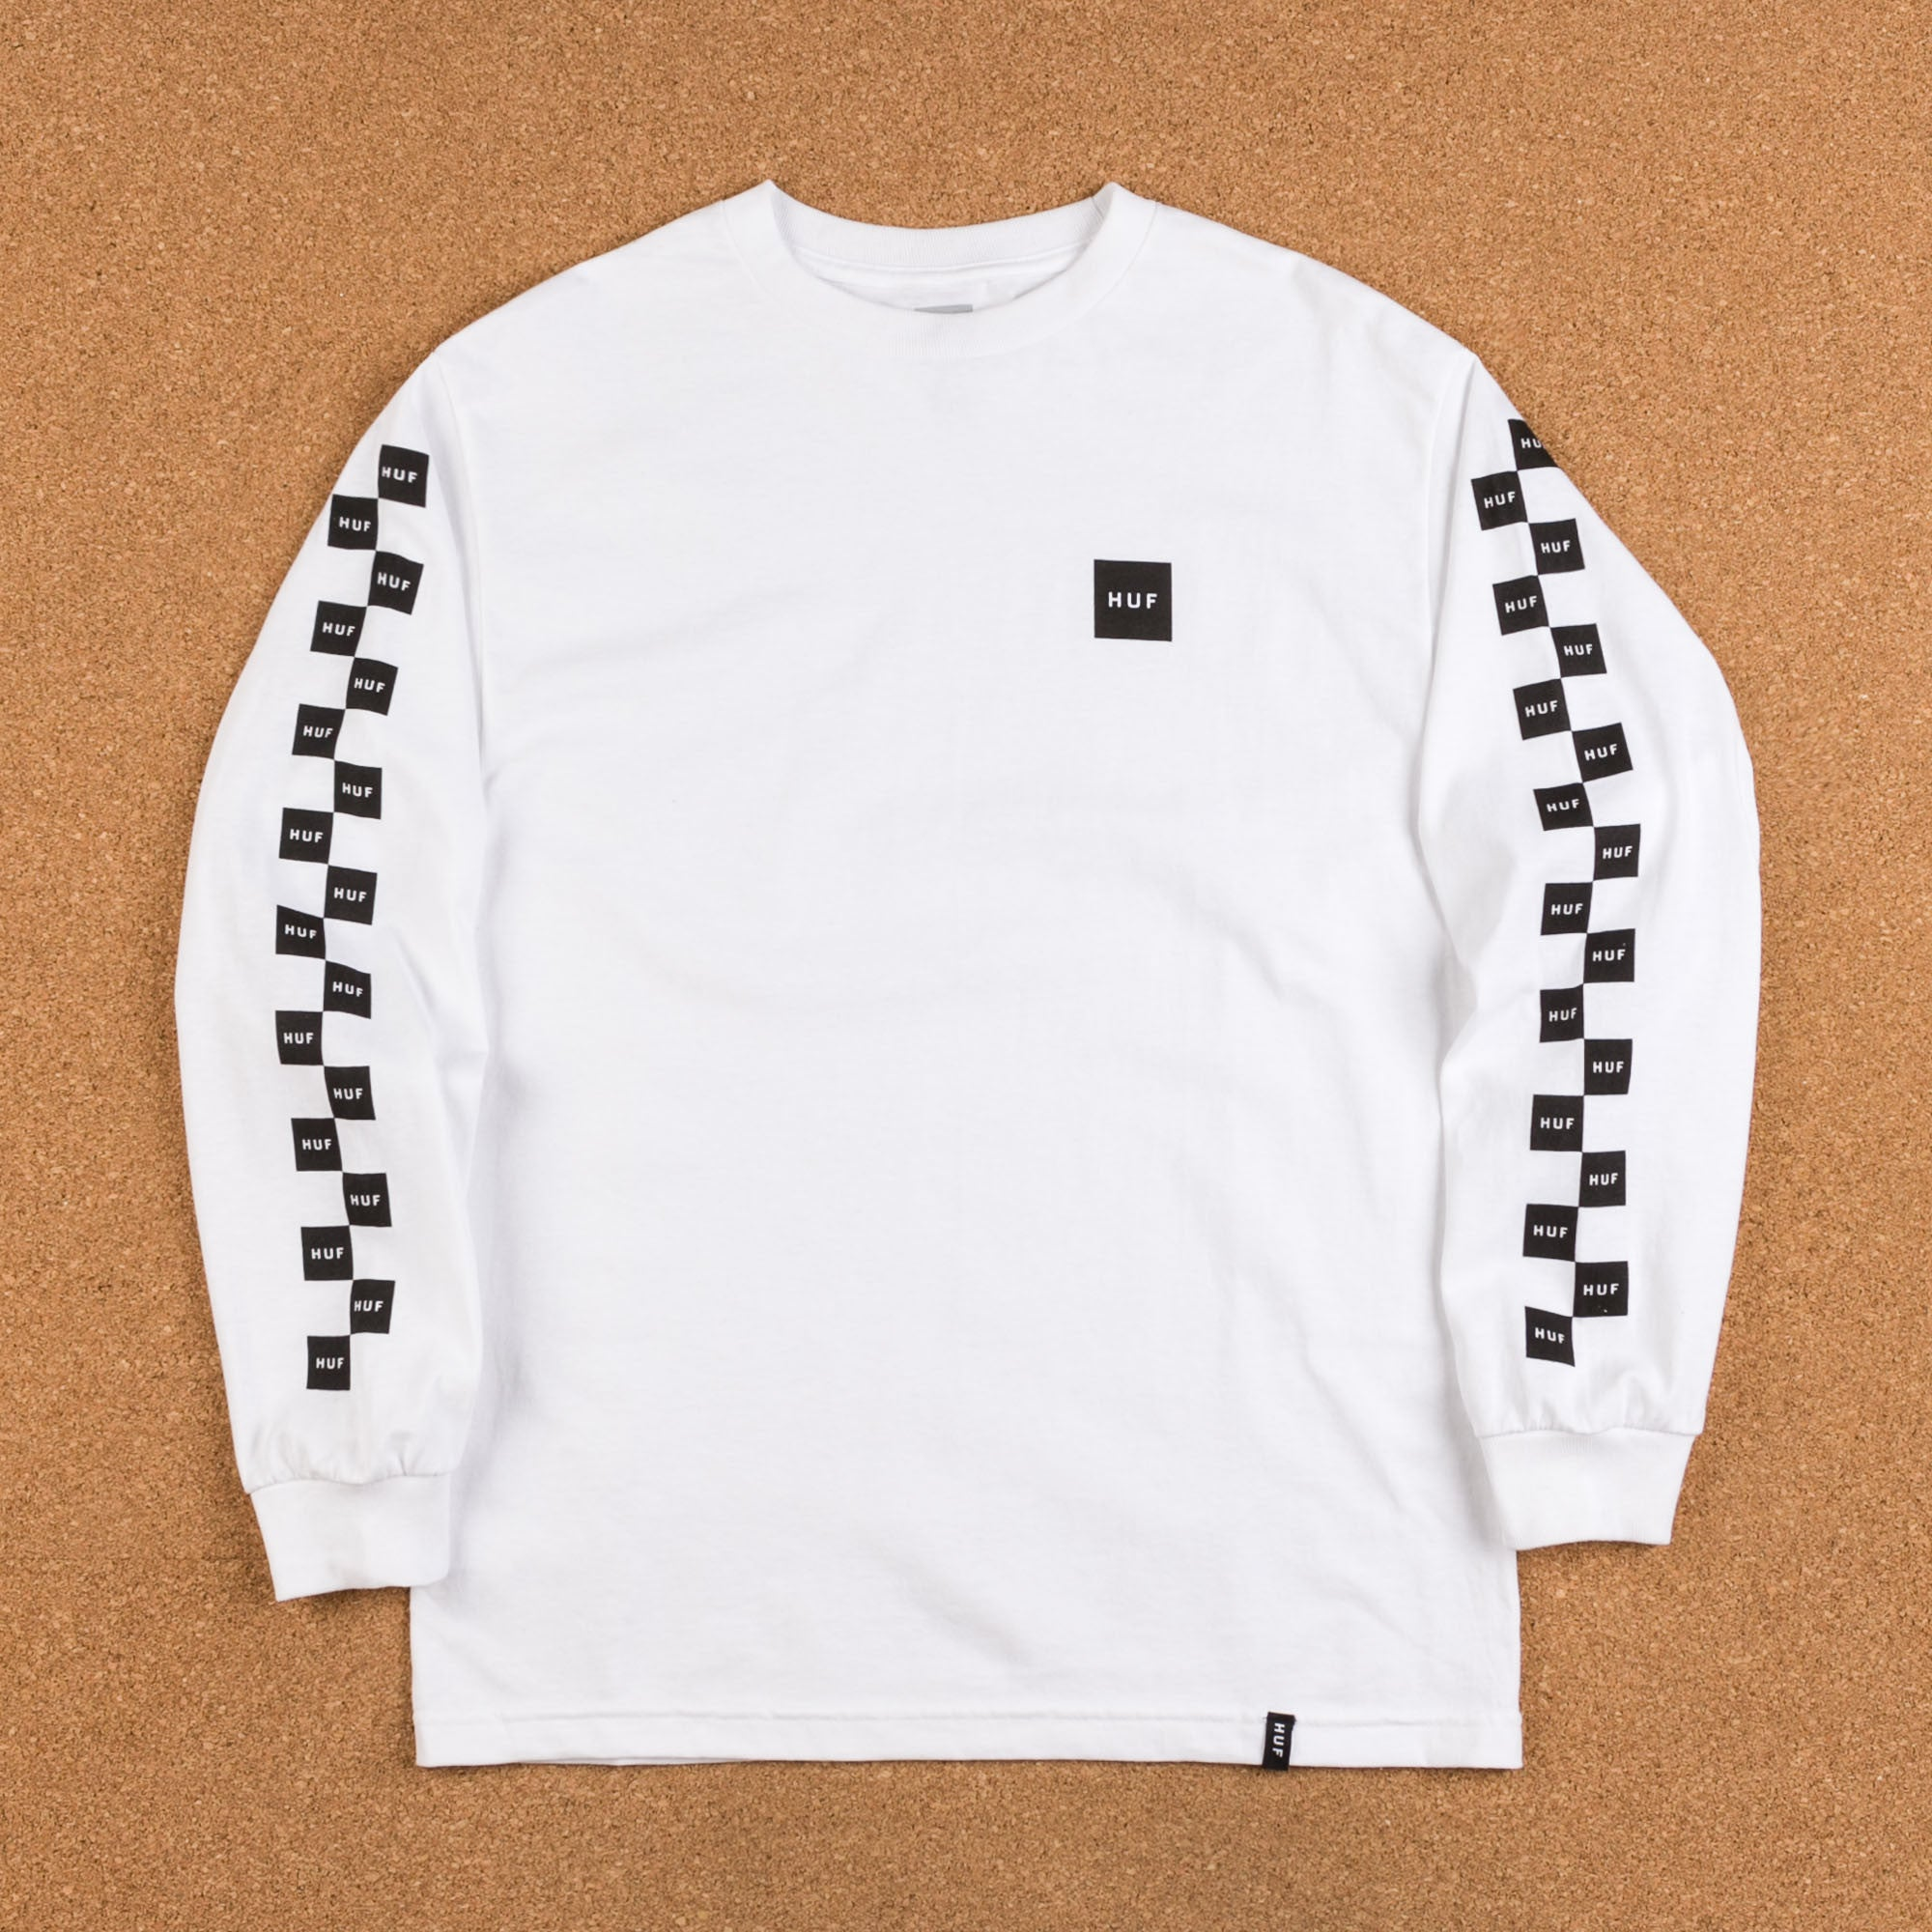 HUF Bunny Hop Long Sleeve T-Shirt - White / Black